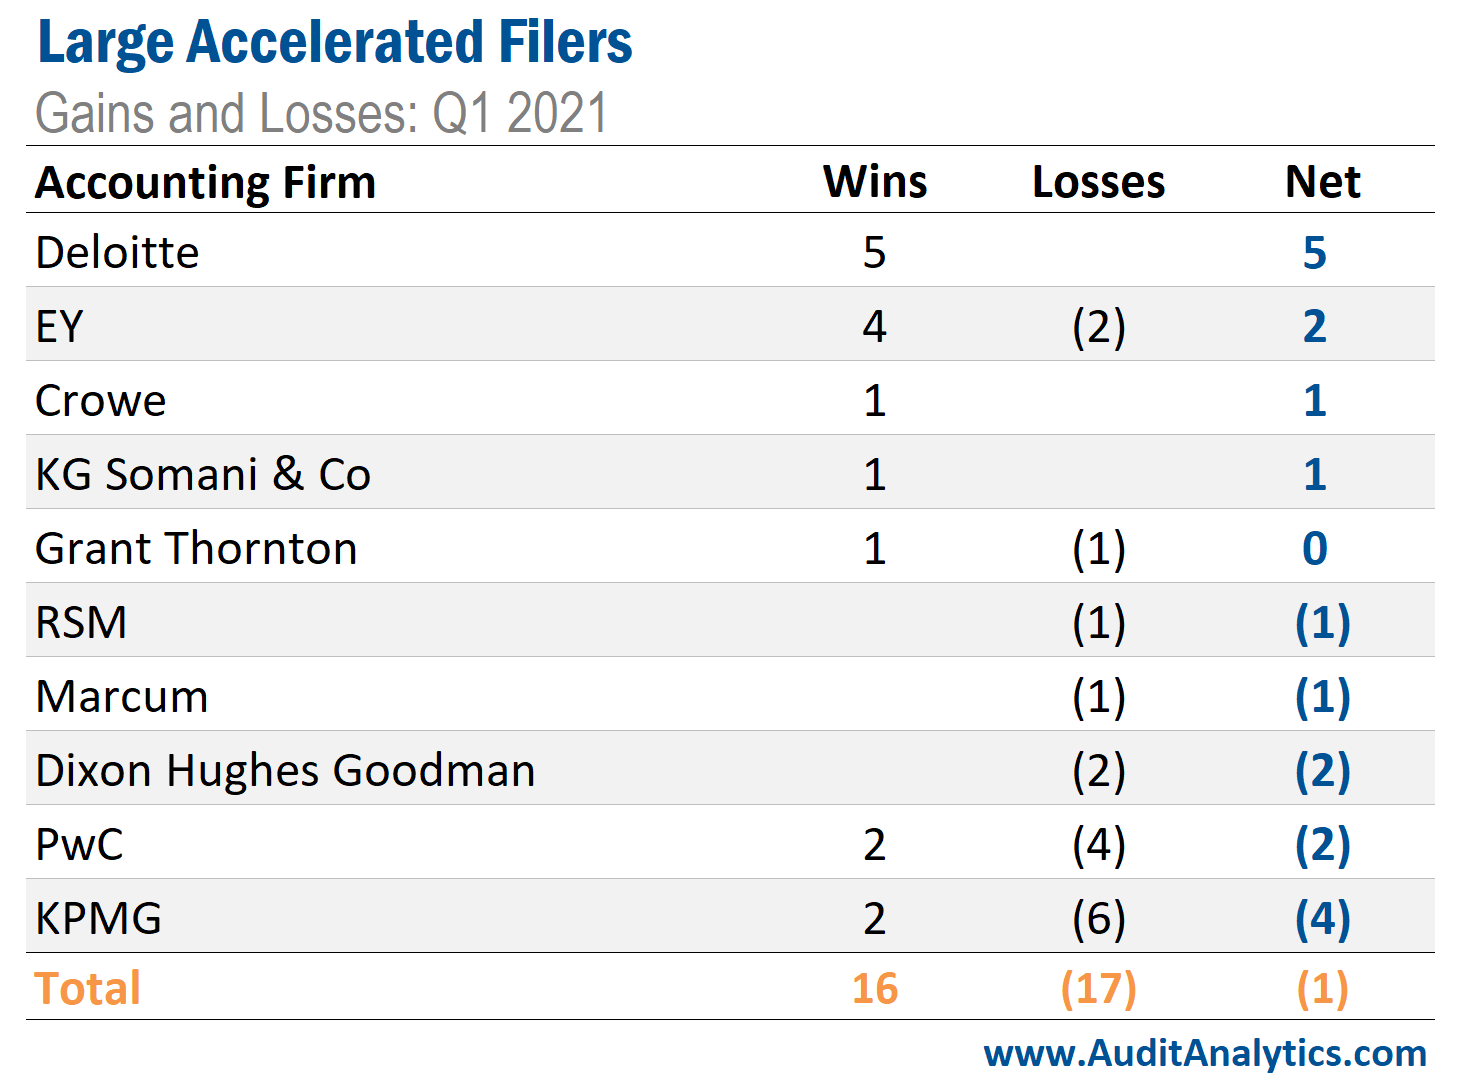 Large Accelerated Filers Gains and Losses: Q1 2021